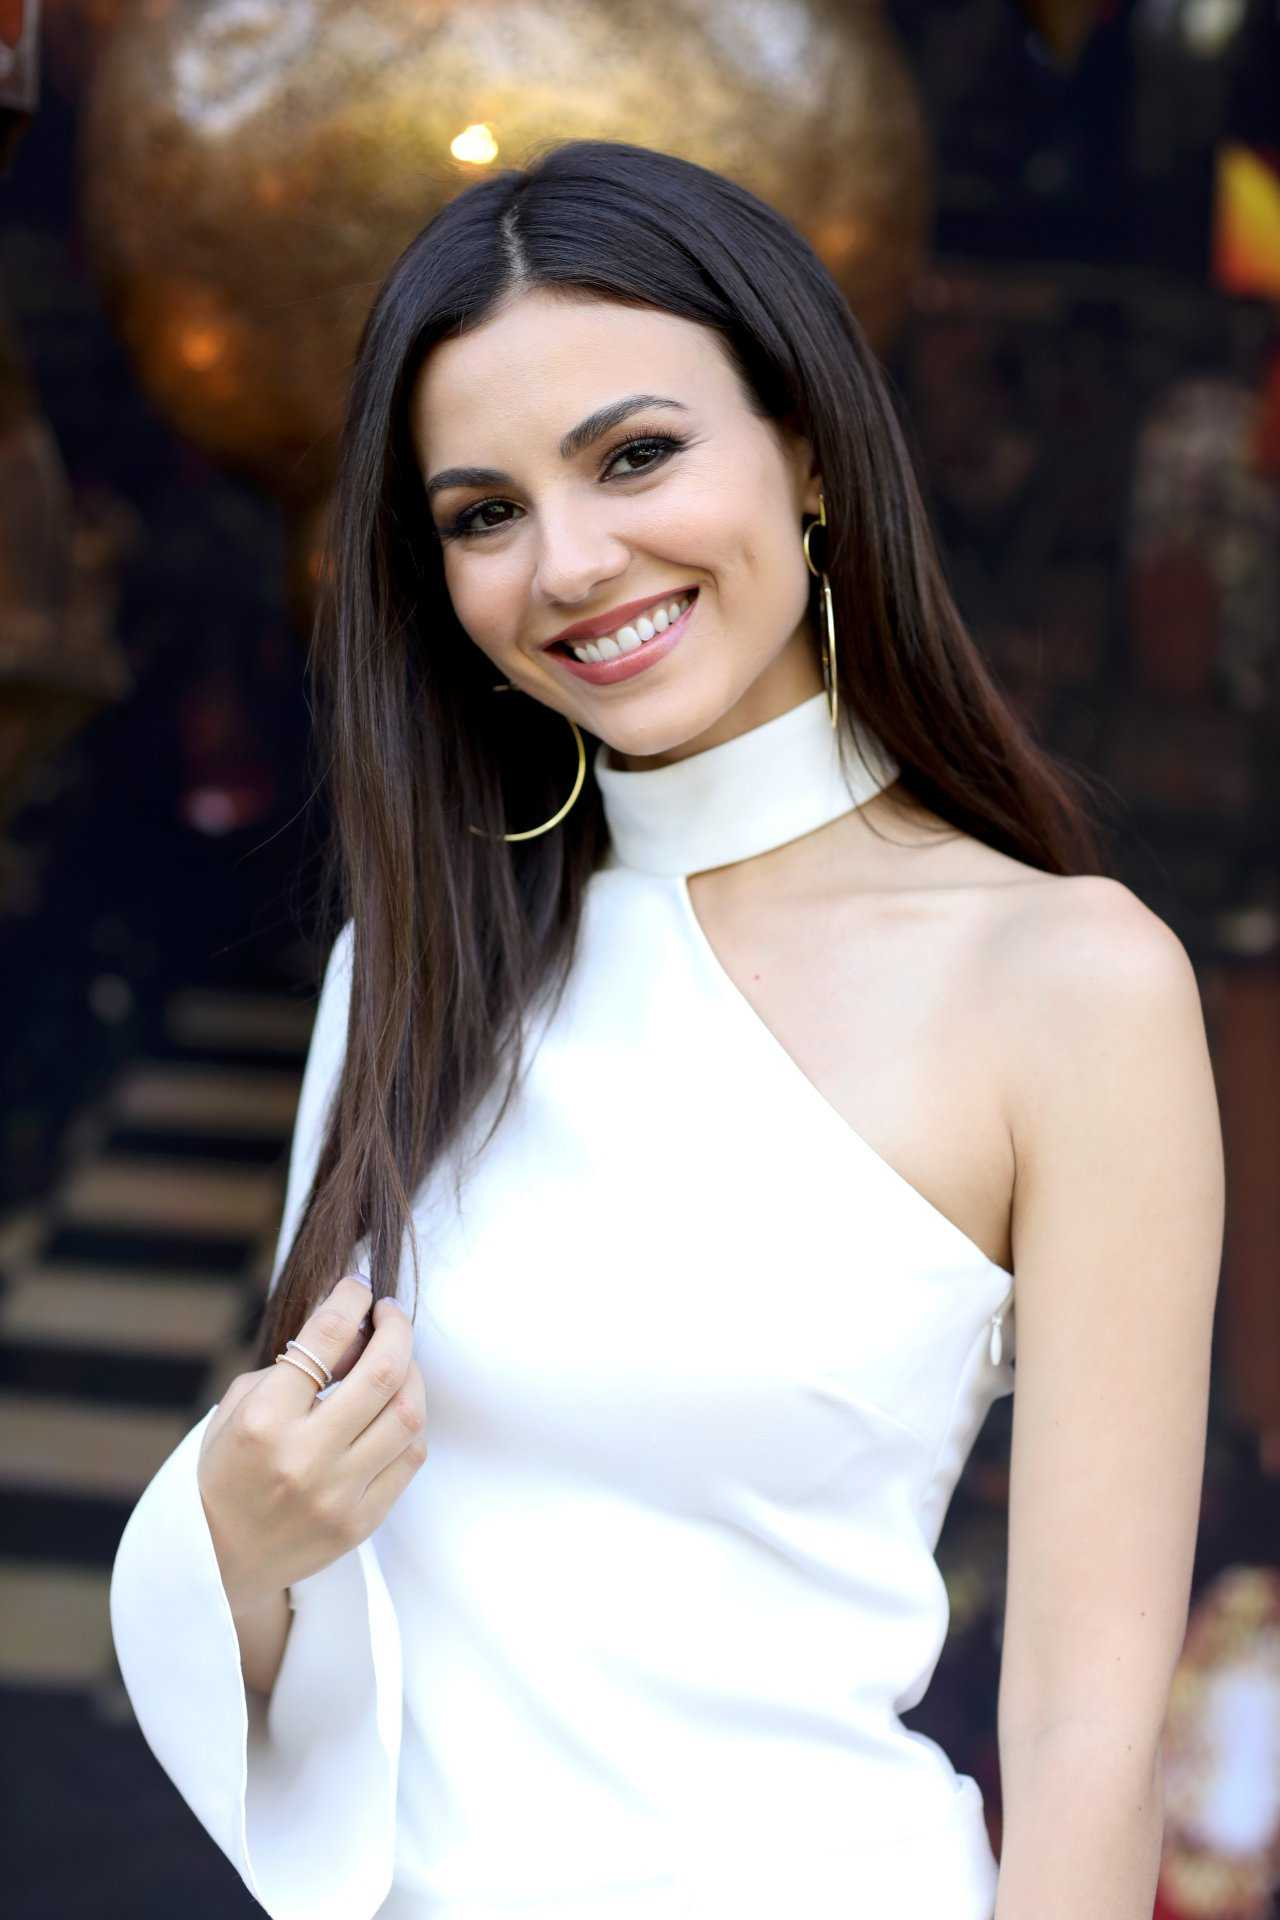 Victoria-Justice-327 - SAWFIRST